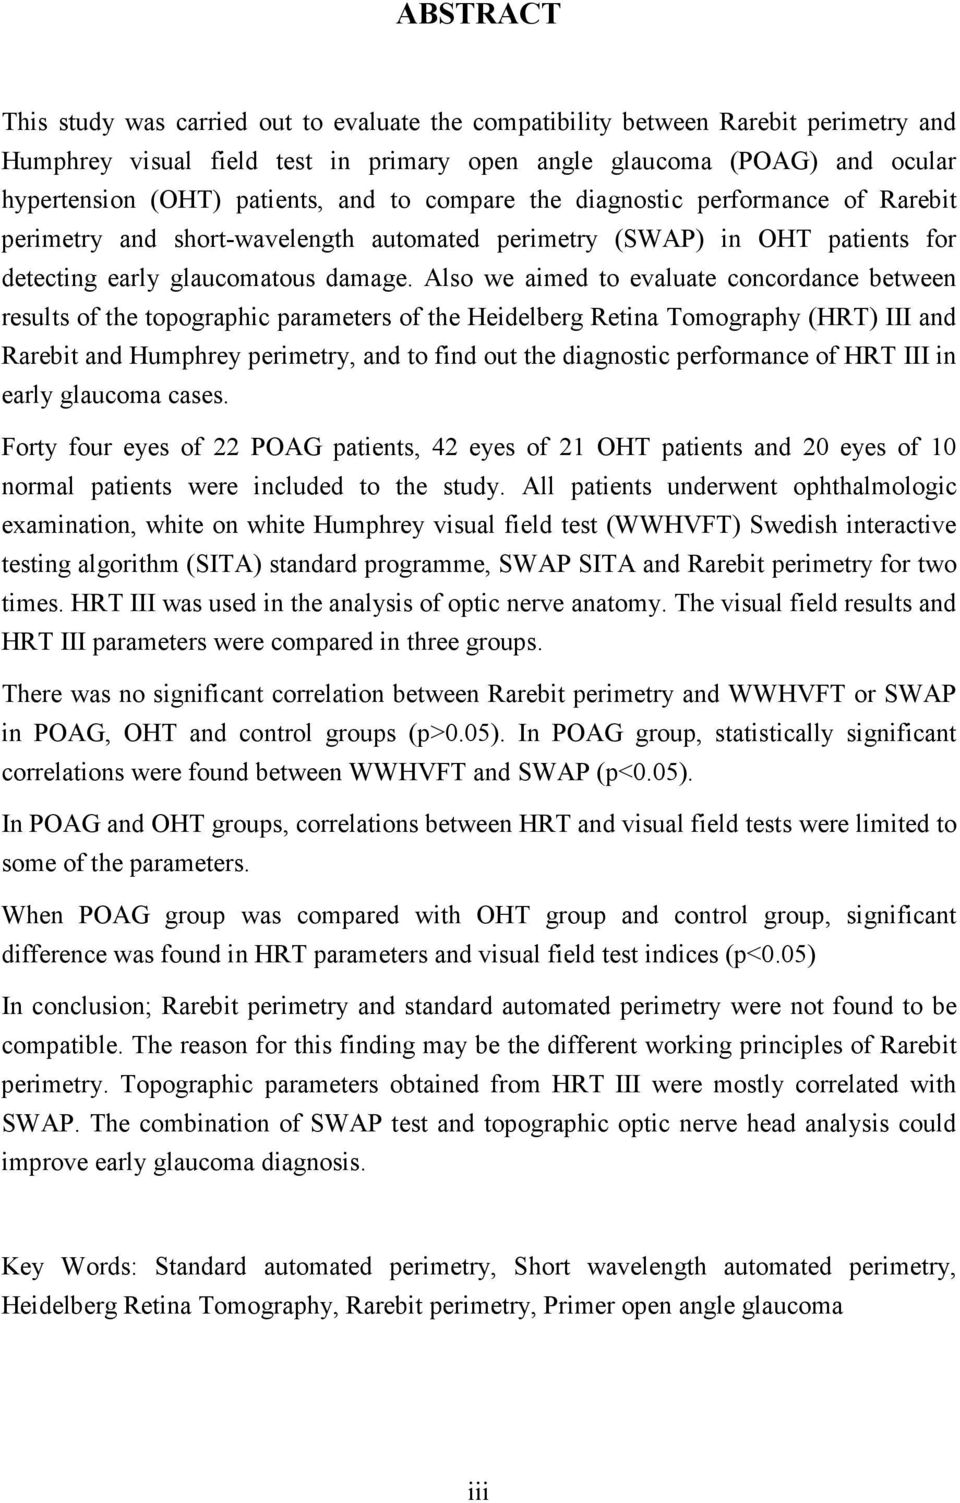 Also we aimed to evaluate concordance between results of the topographic parameters of the Heidelberg Retina Tomography (HRT) III and Rarebit and Humphrey perimetry, and to find out the diagnostic